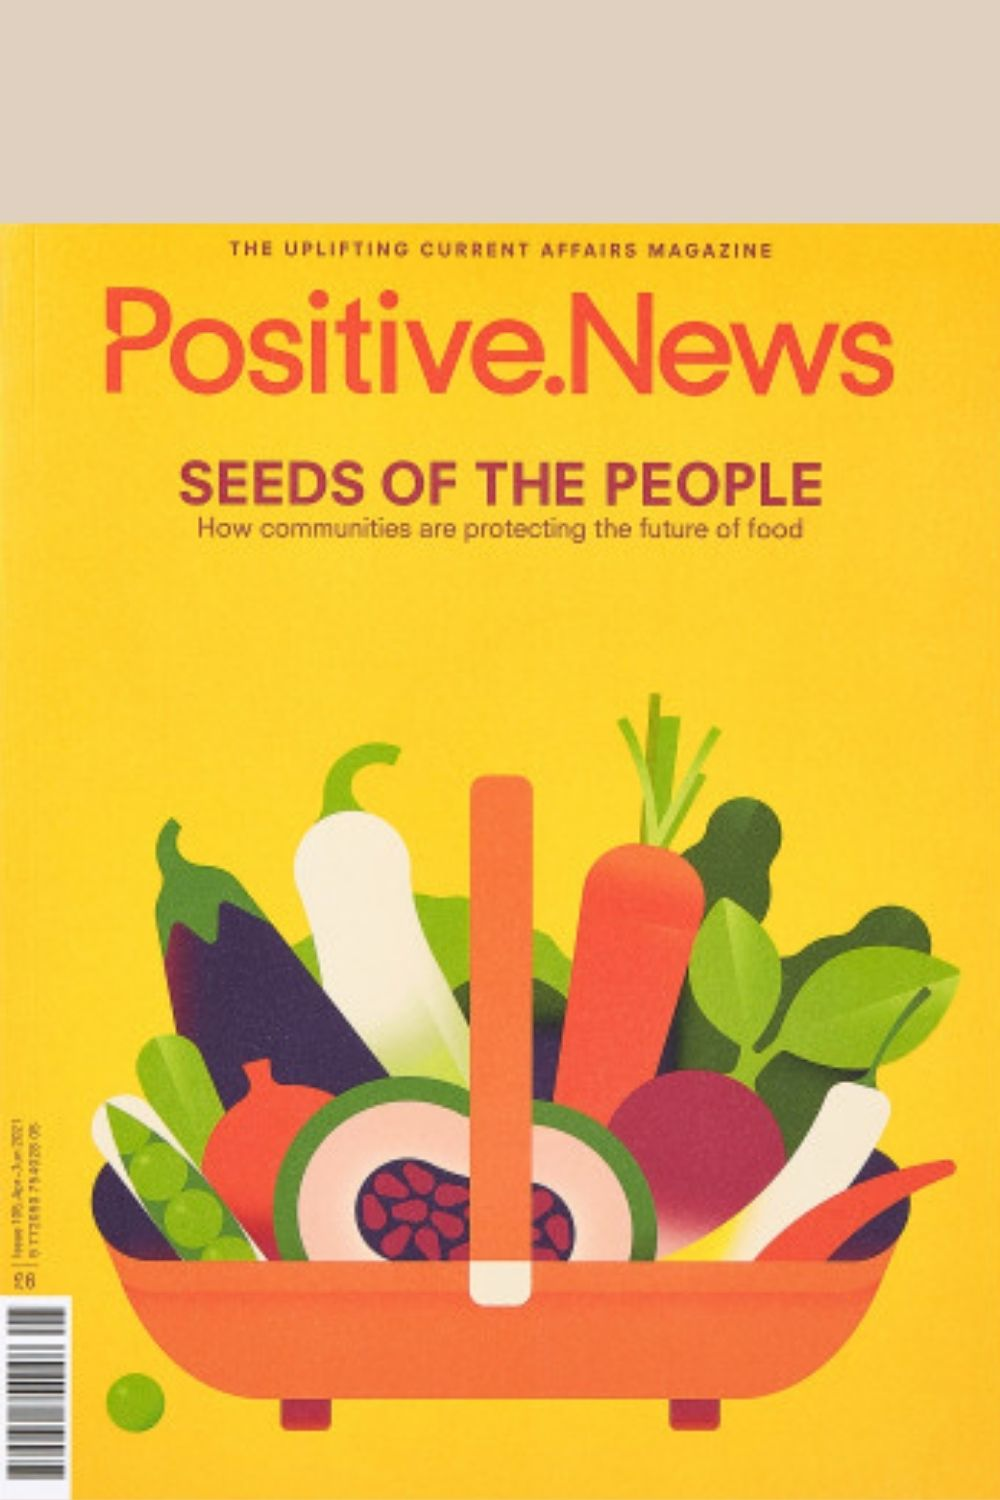 Positive News Issue 105 cover Seeds of The People